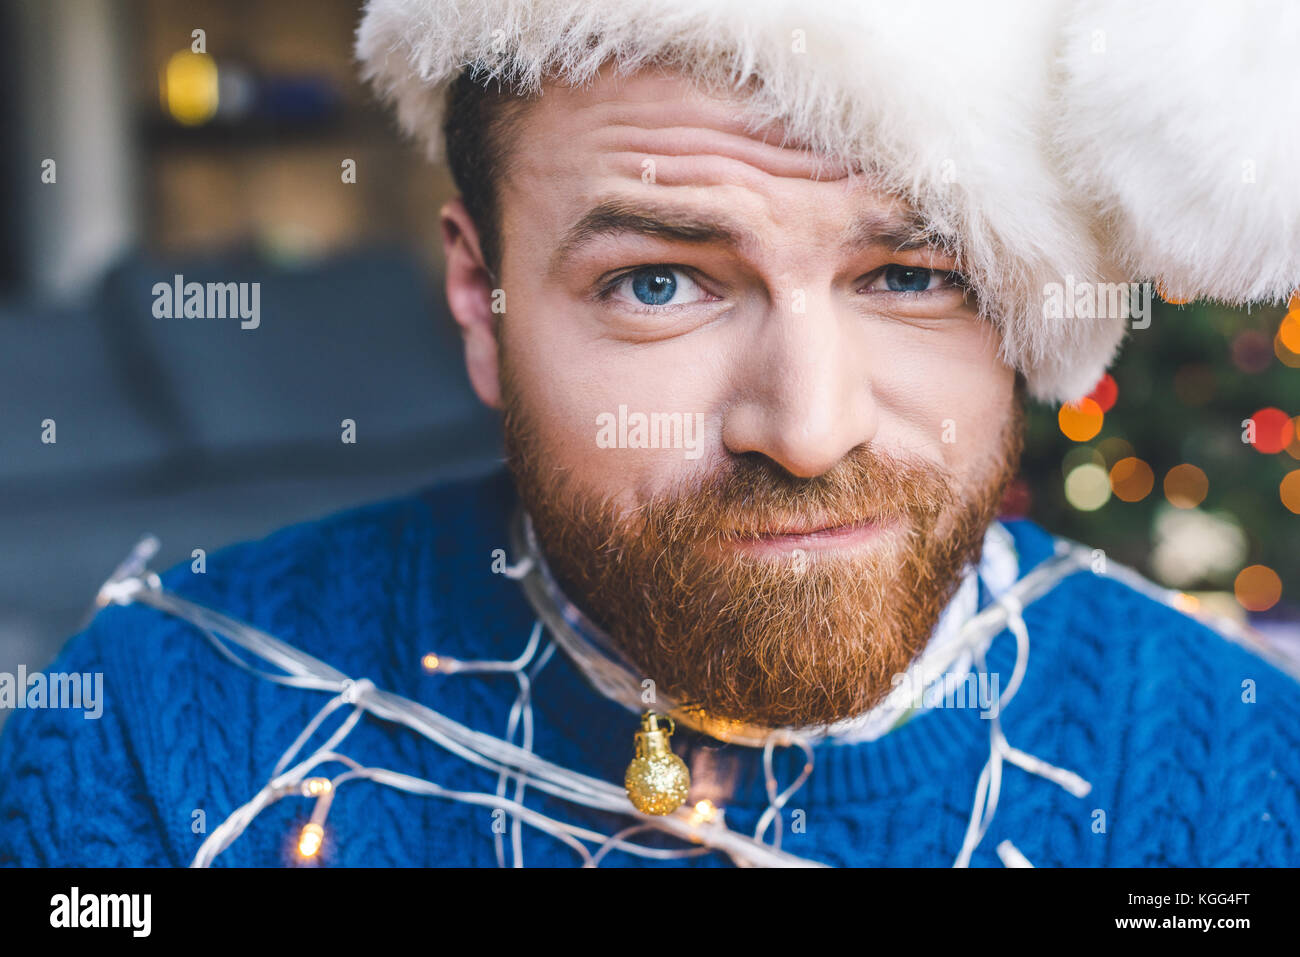 man tied up with christmas garland - Stock Image